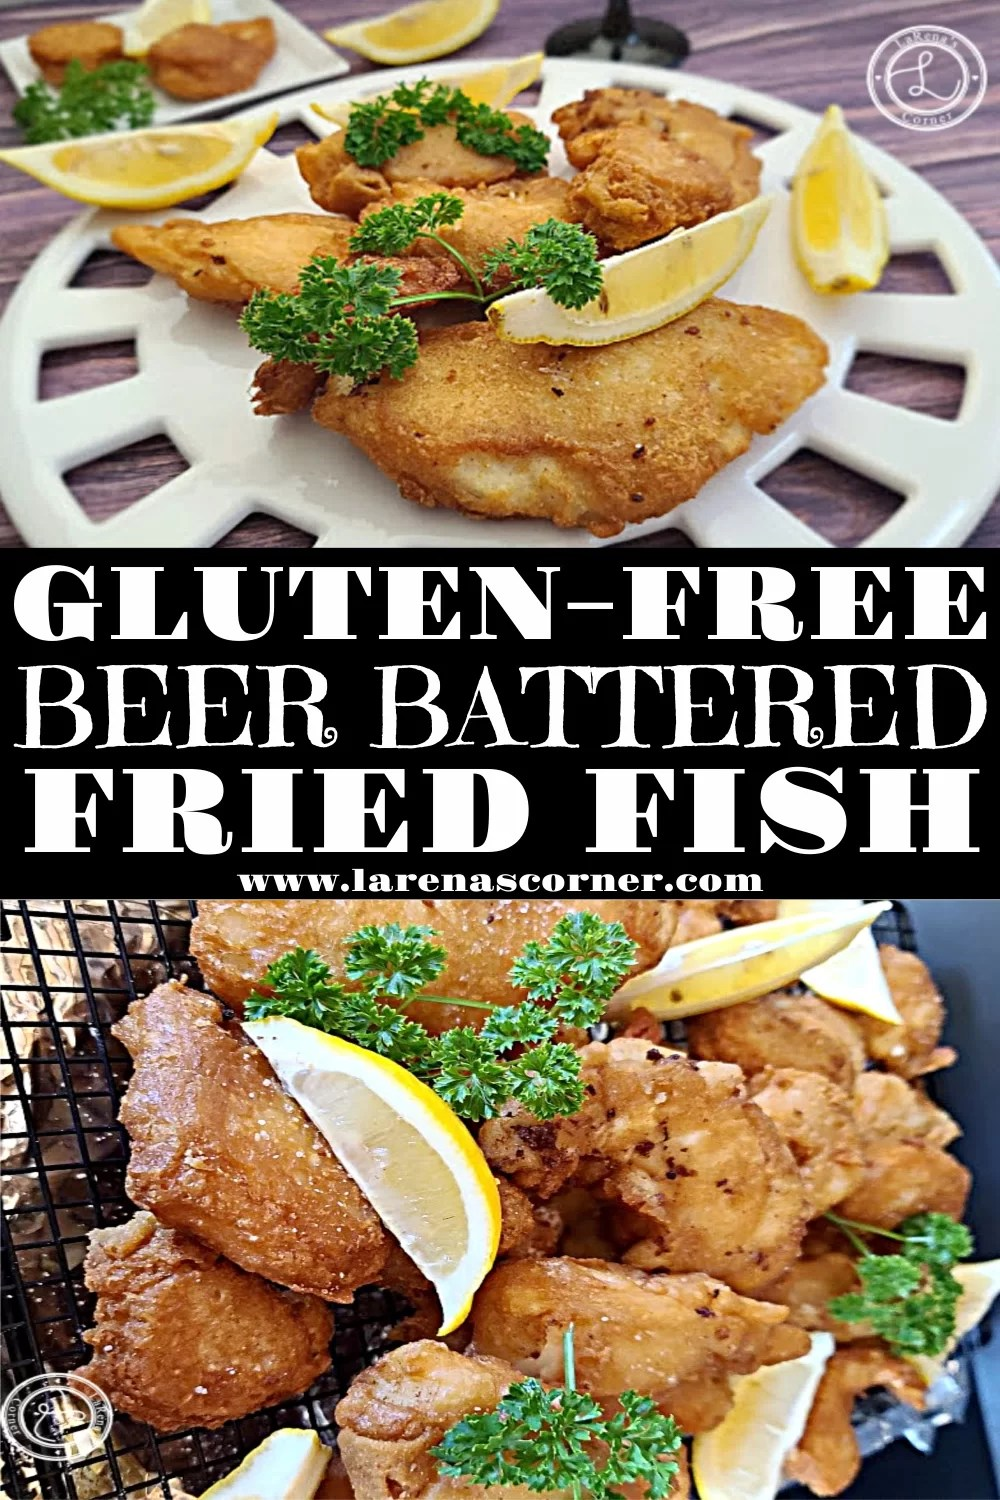 Gluten-Free Beer Battered Fish two pictures of the fish